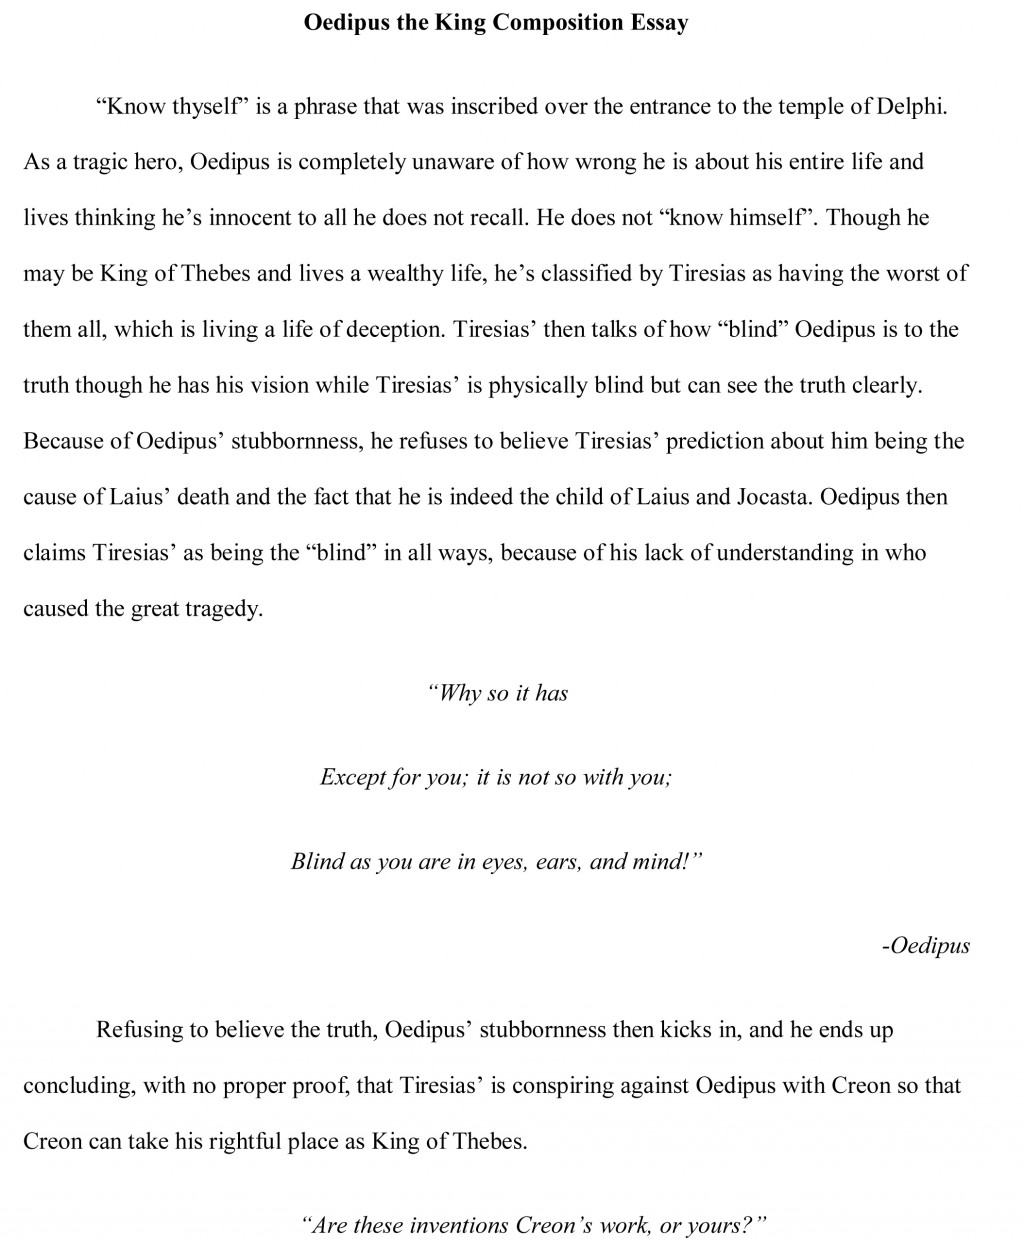 007 Top Essay Topics For College Oedipus Free Sample Unbelievable 10 Large